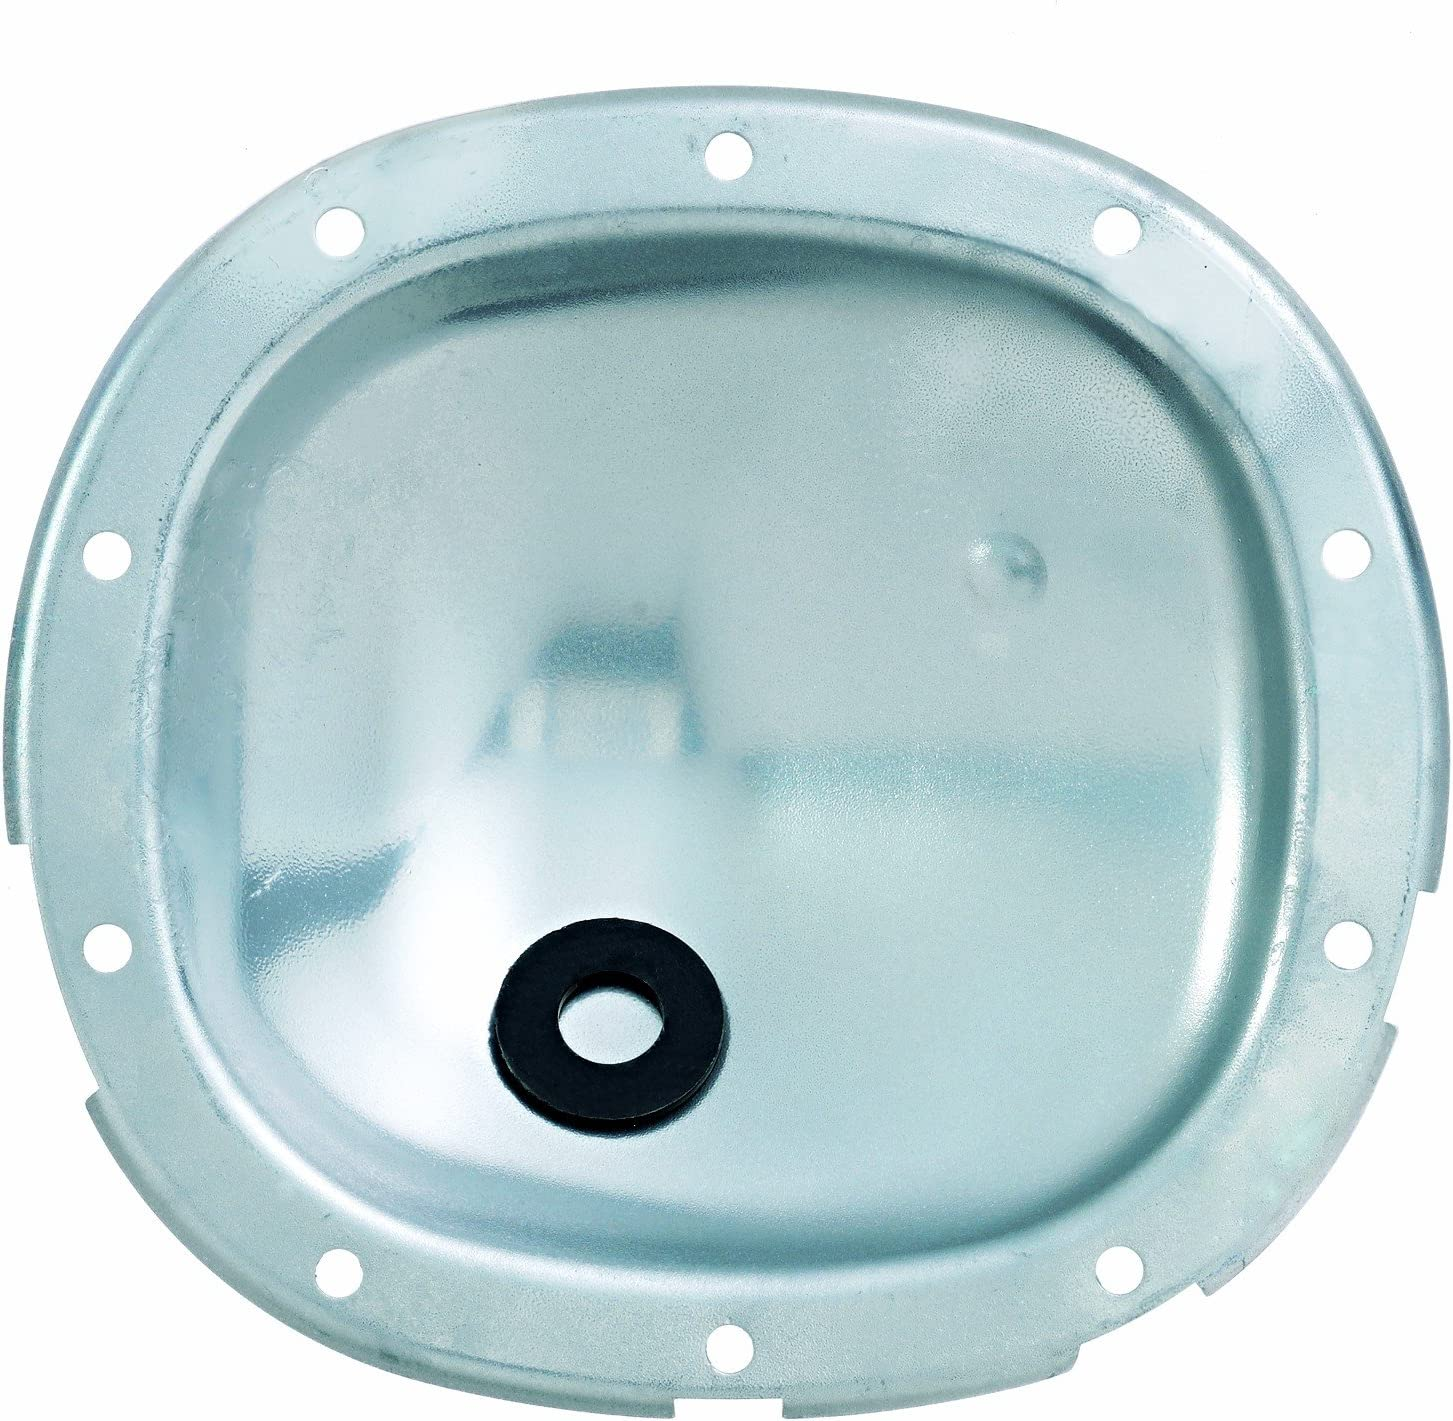 Dealing full price reduction ATP Automotive Ranking integrated 1st place 111102 Kit Differential Cover